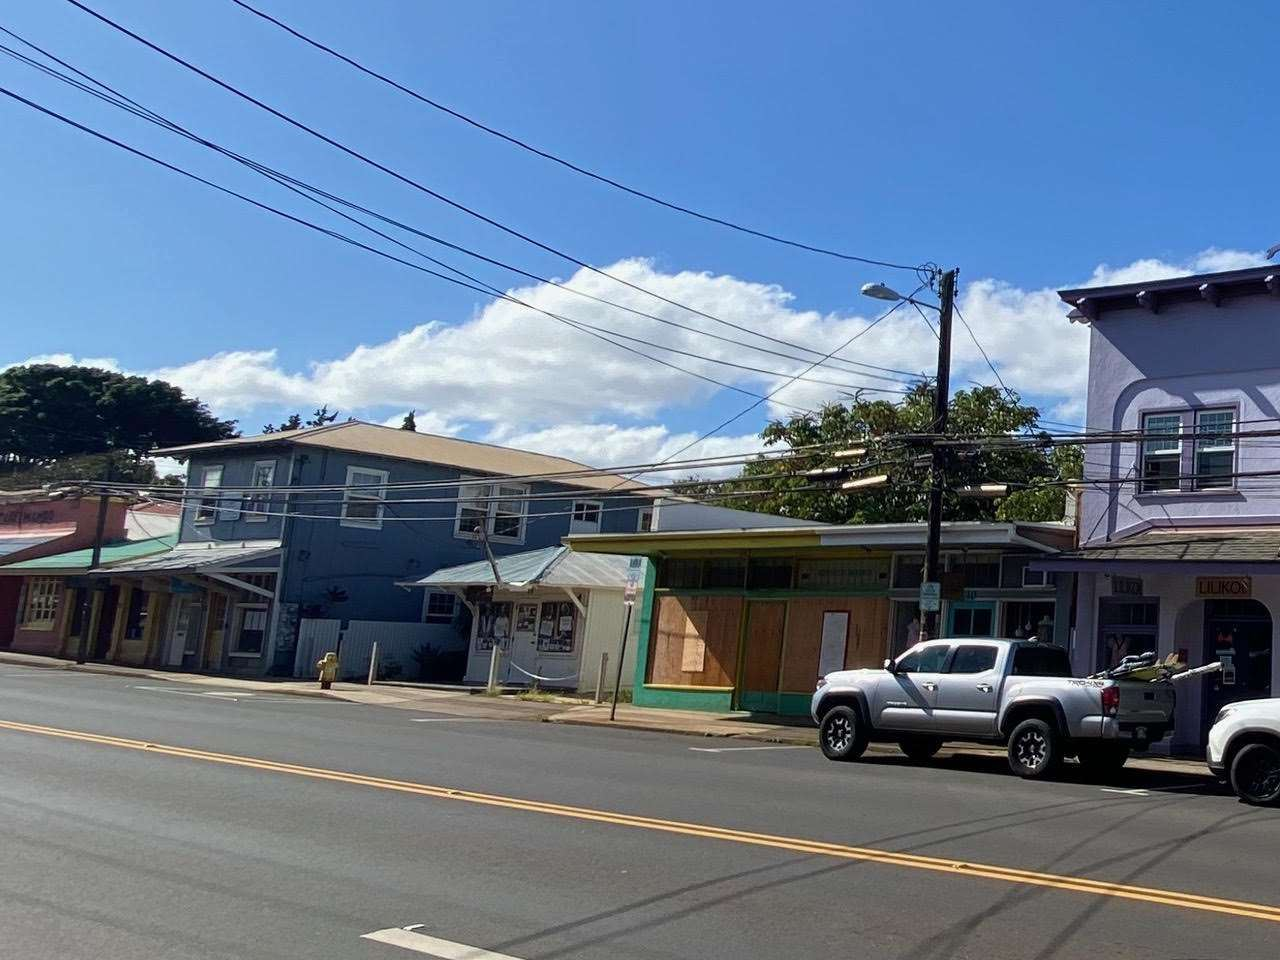 Photo of 20 BALDWIN Ave, Paia, HI 96779 (MLS # 388770)